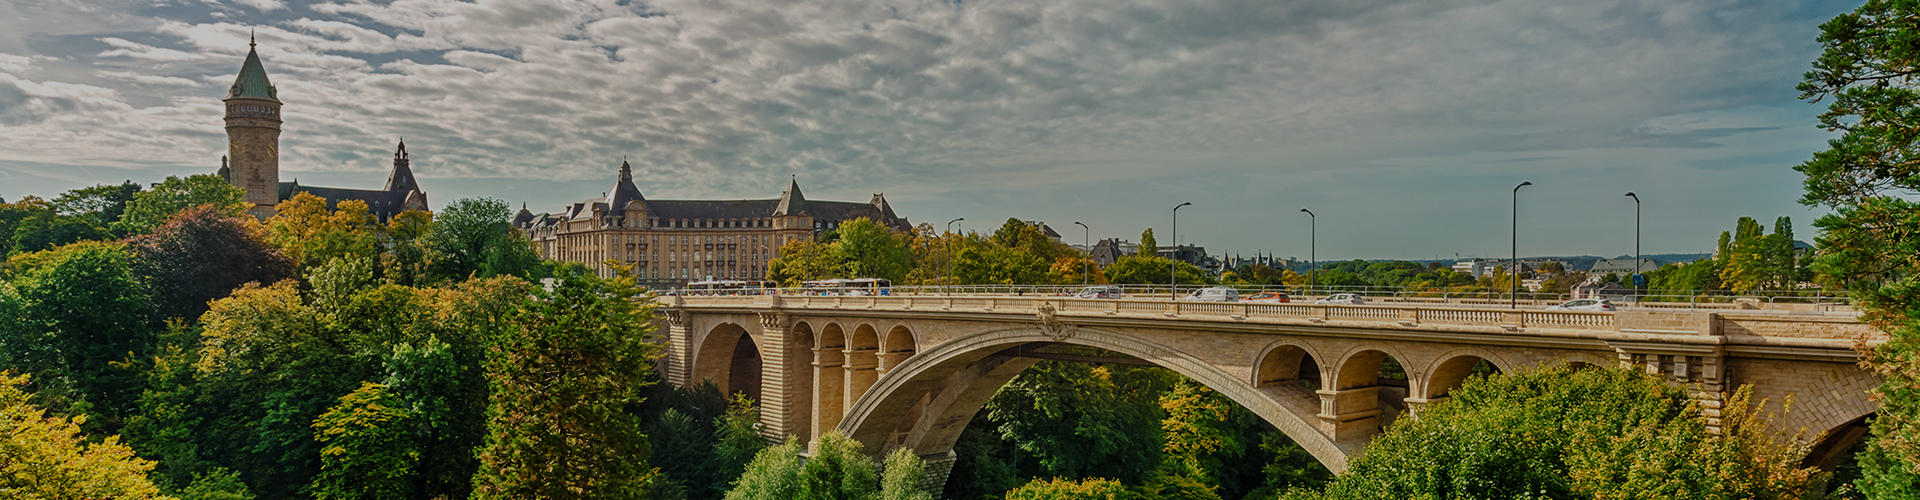 Landmark photograph of Luxembourg